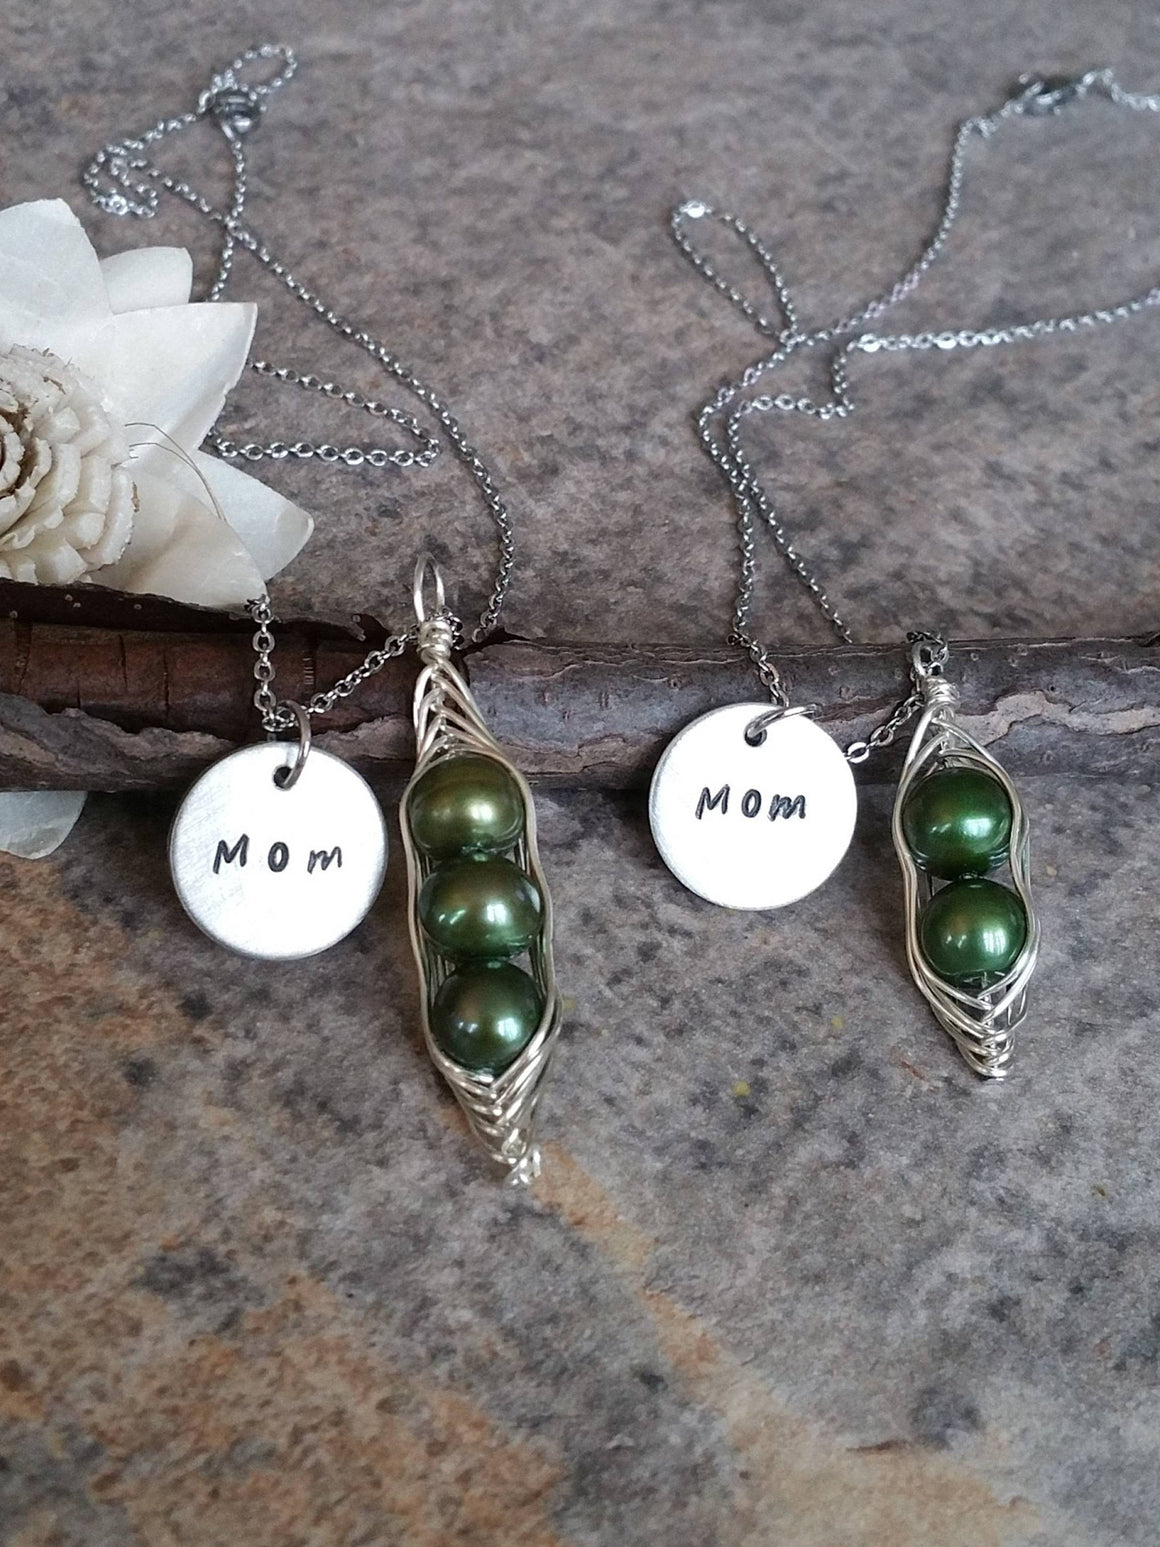 Personalized green peas in a pod necklace for mom